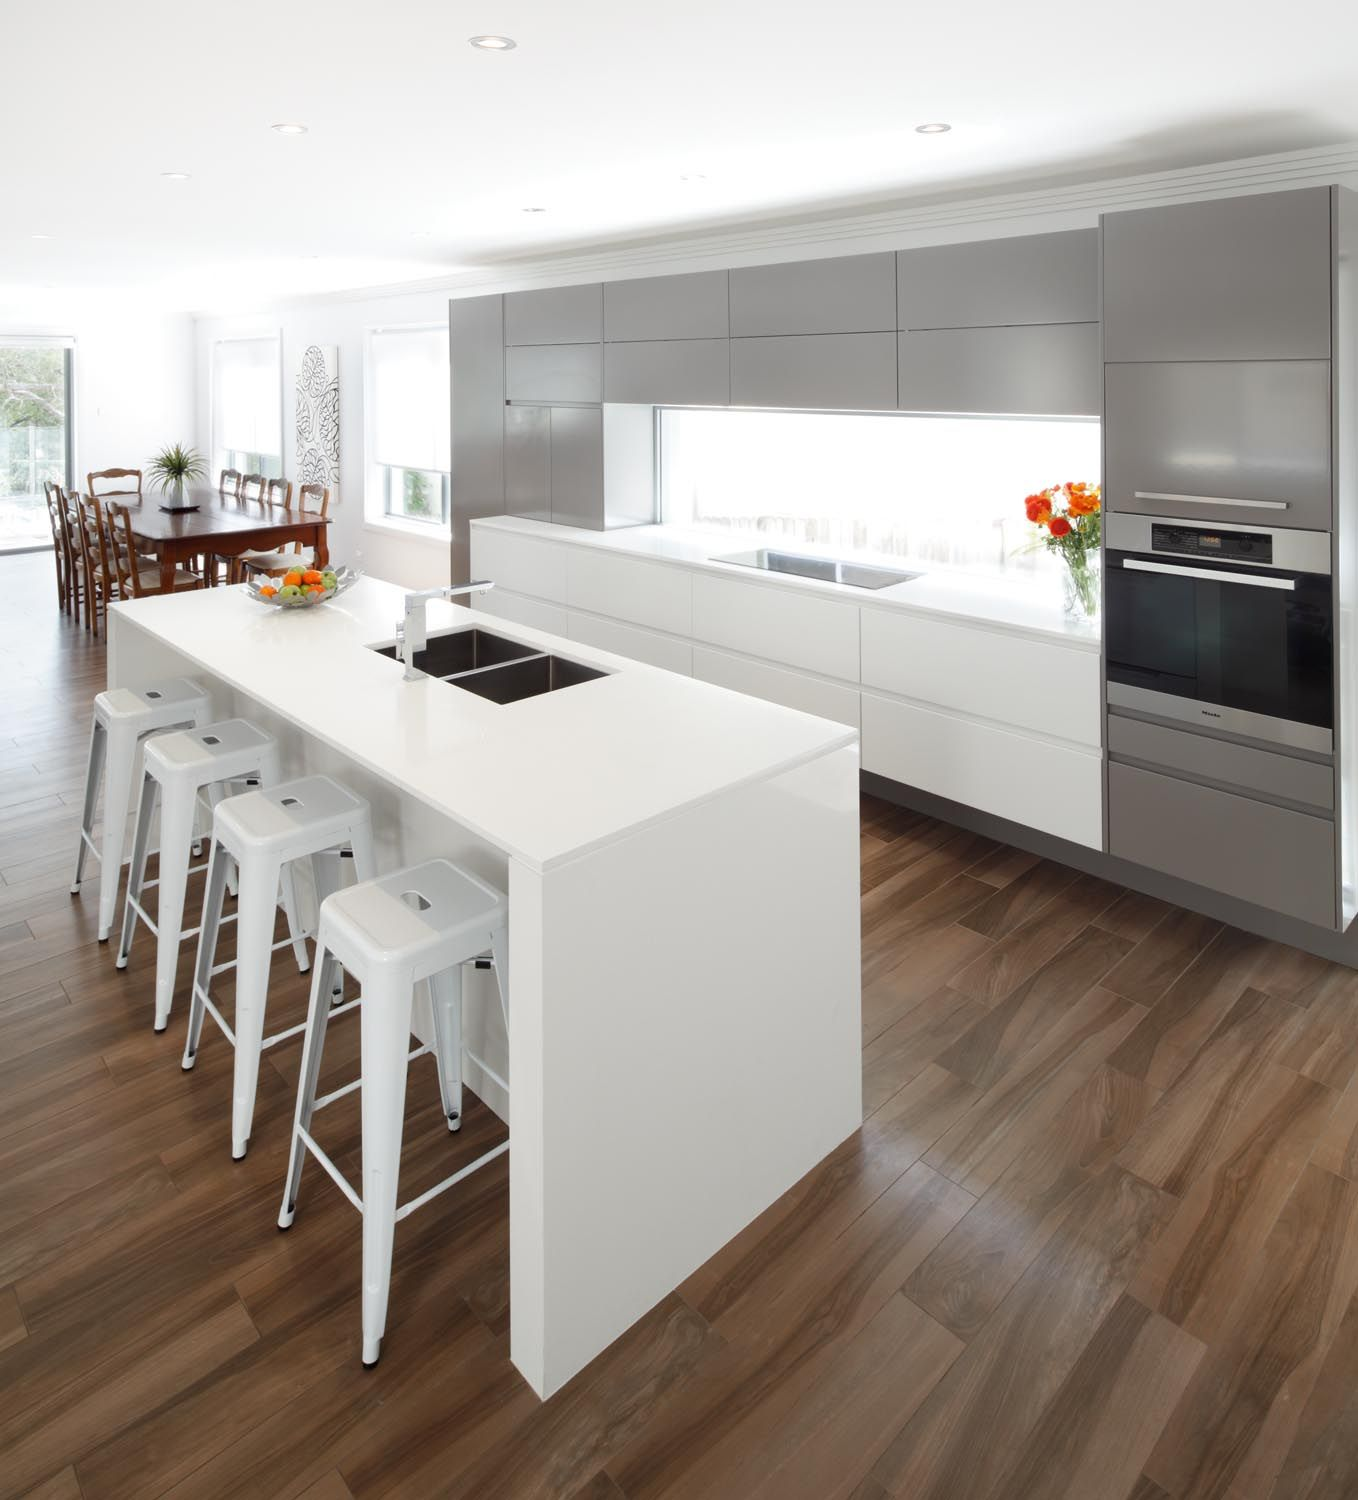 This Sleek Modern Kitchen Design Incorporates White